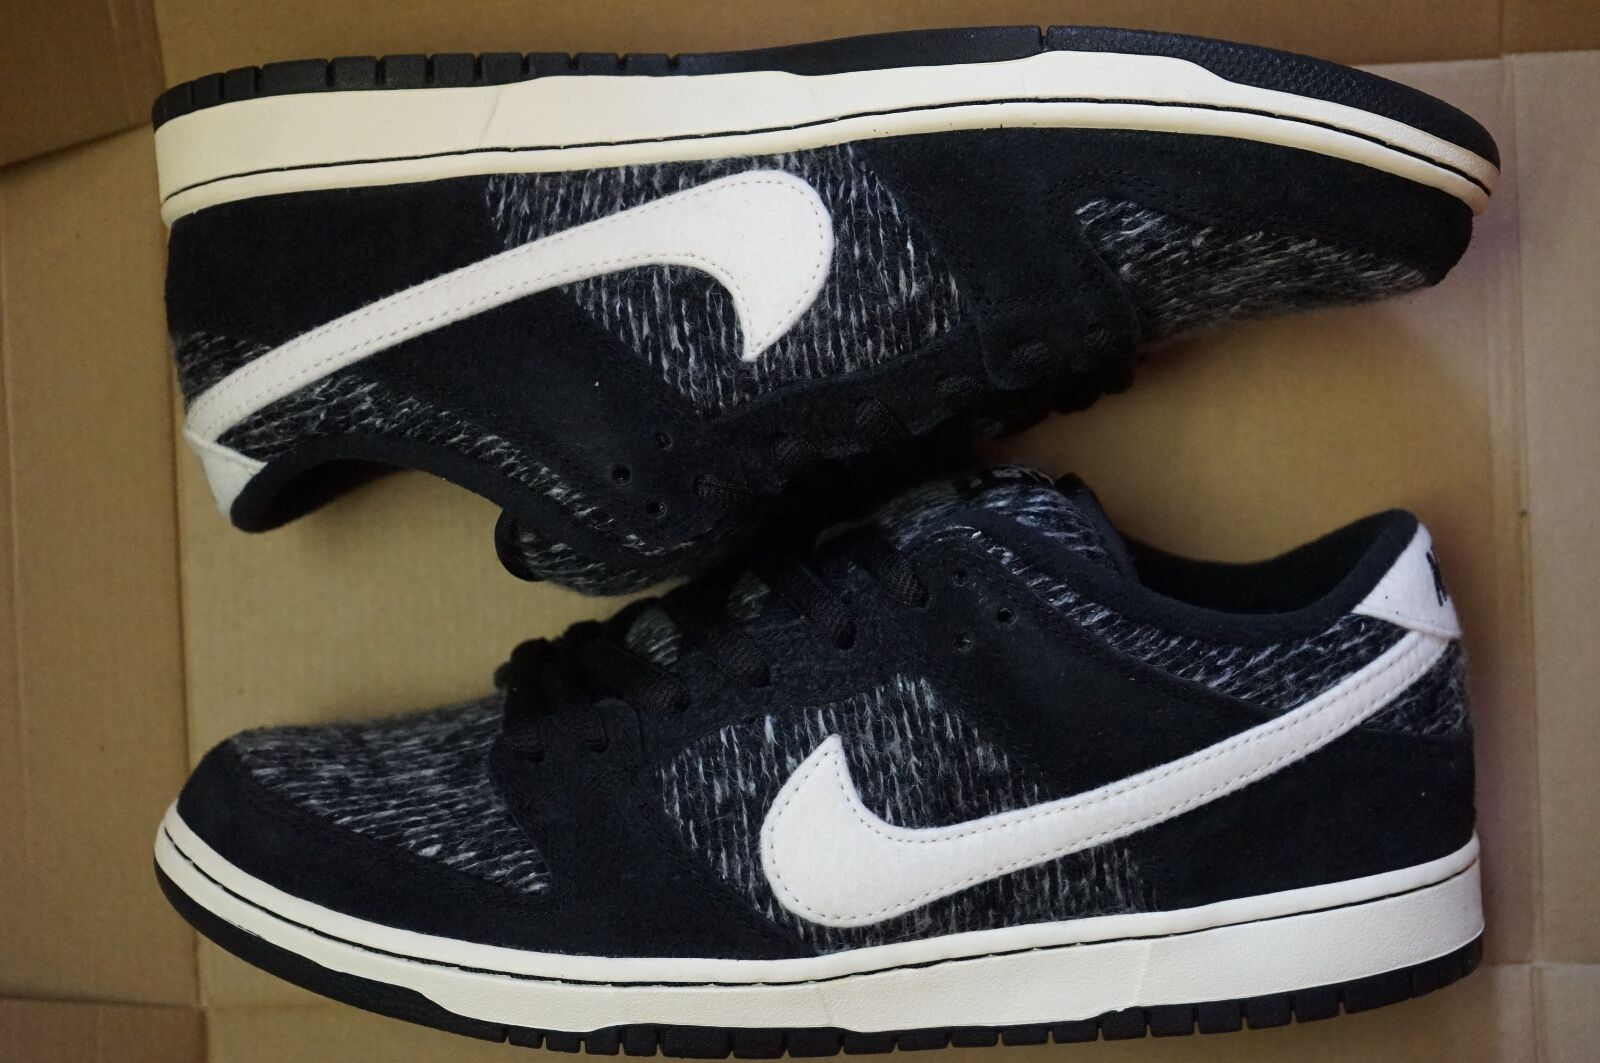 NIKE DUNK faible WARMTH Taille 7-7.5-8.5 homme SKATEBOARDING chaussures (685174 005)